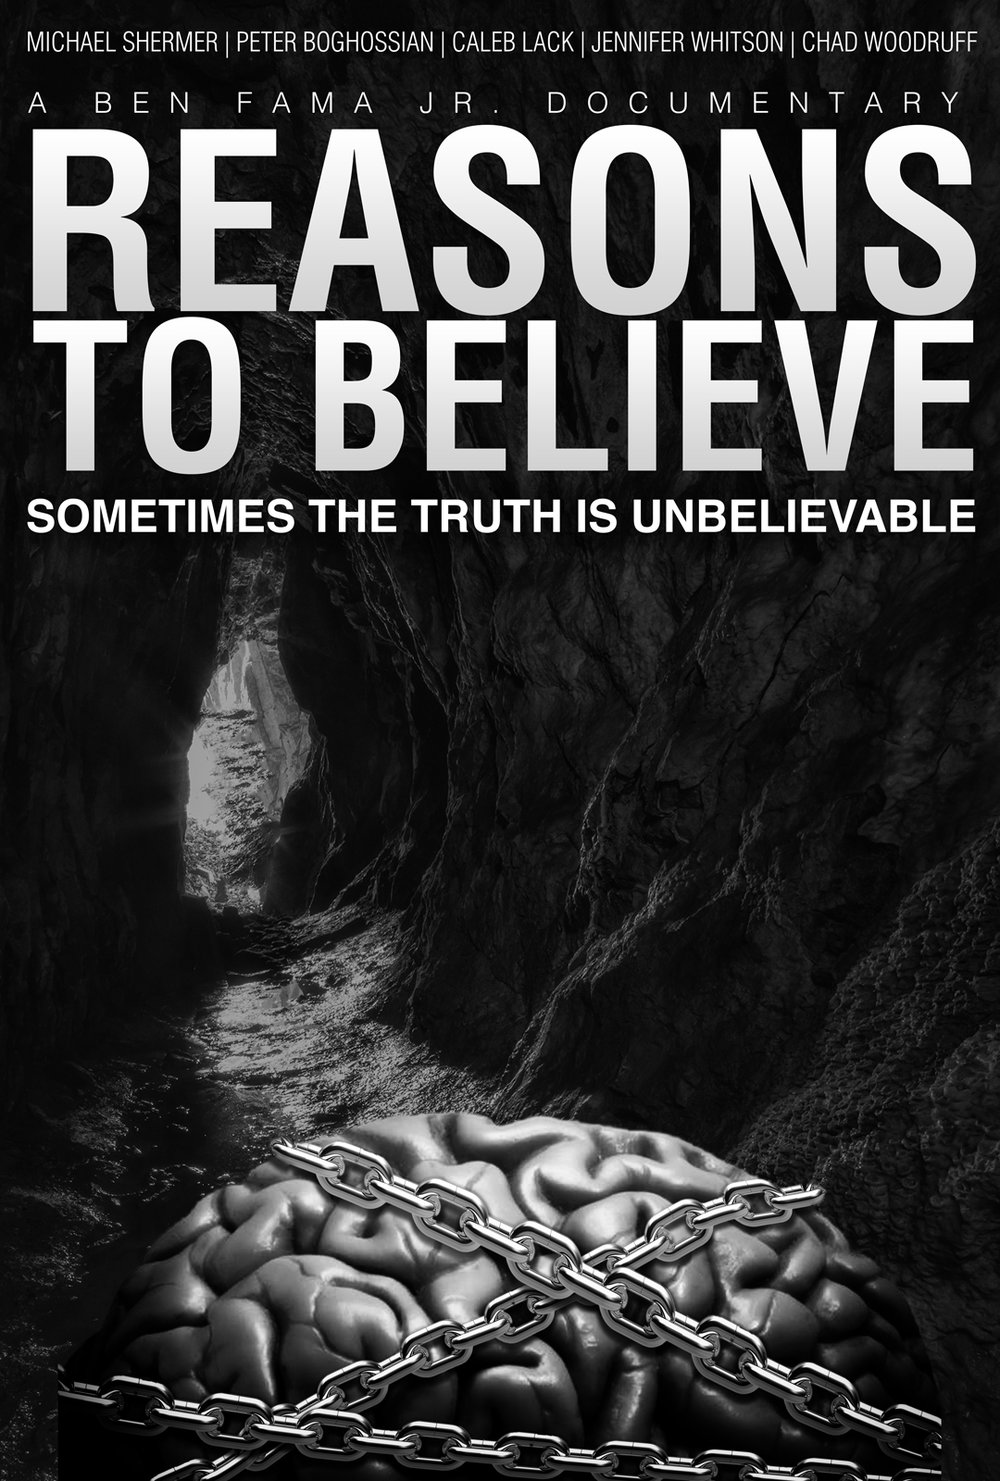 Visit our official website at reasonstobelievefilm.com